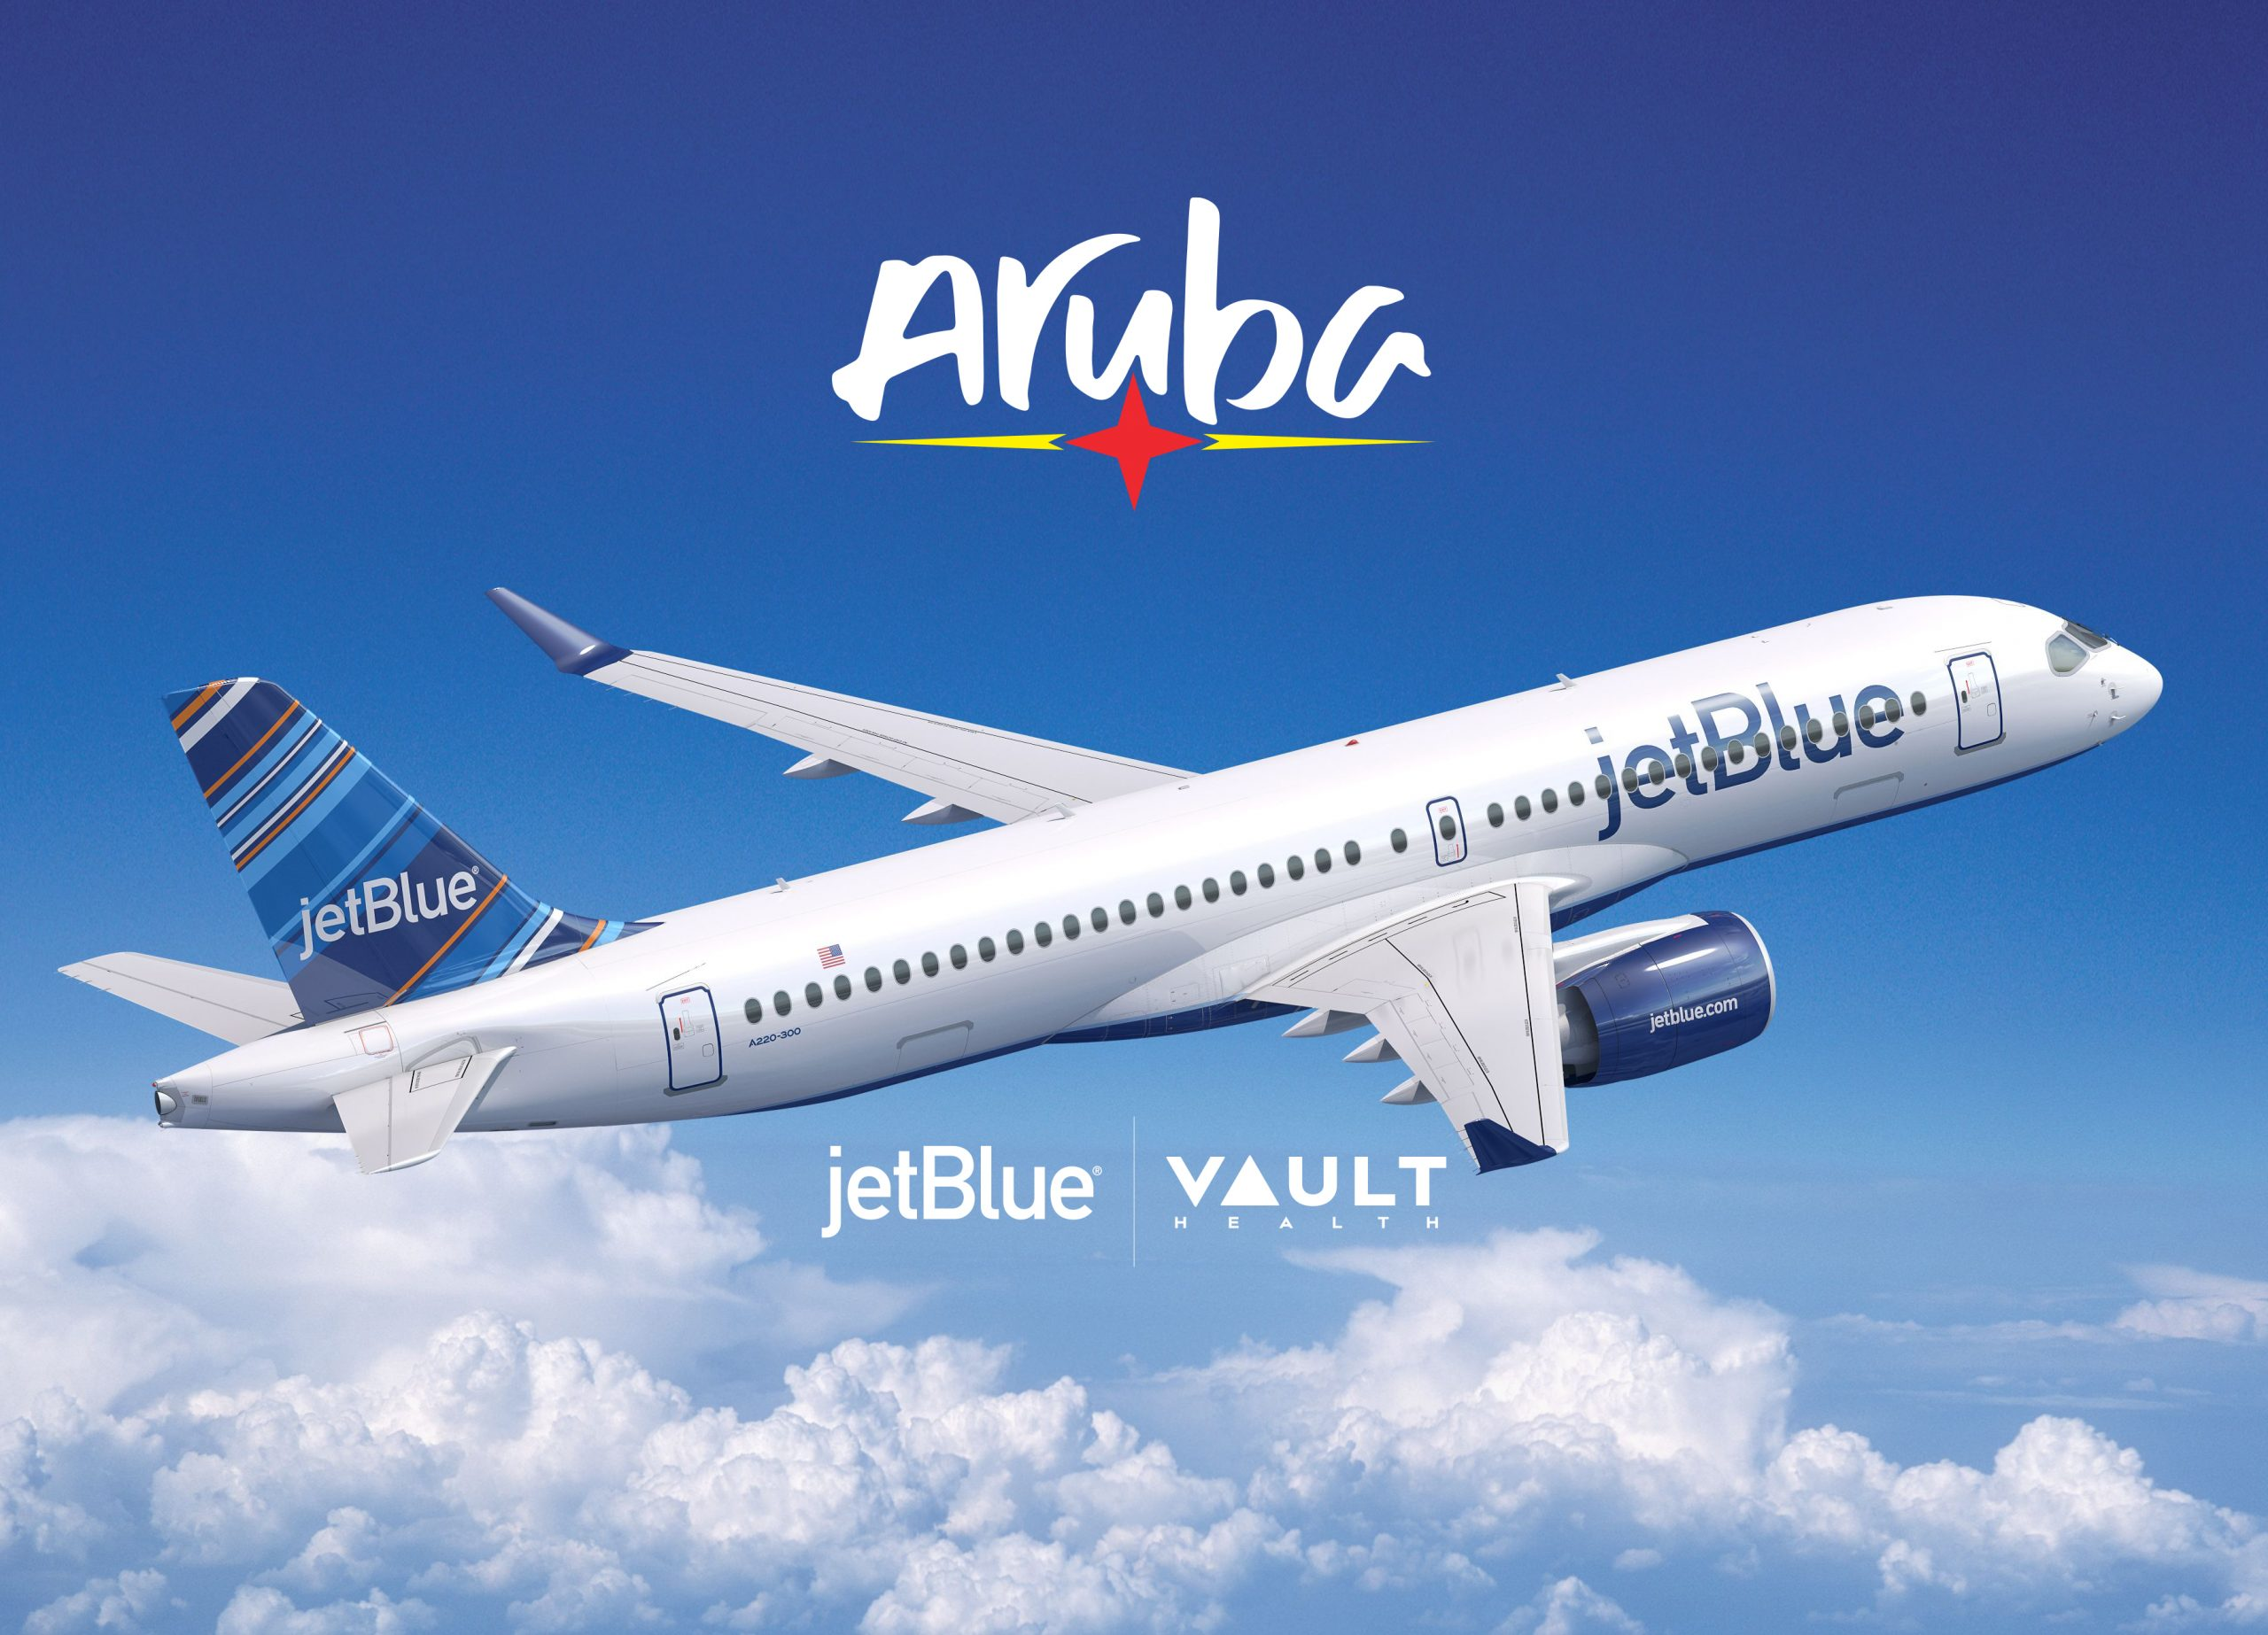 JetBlue's partnership with Vault Health and why!